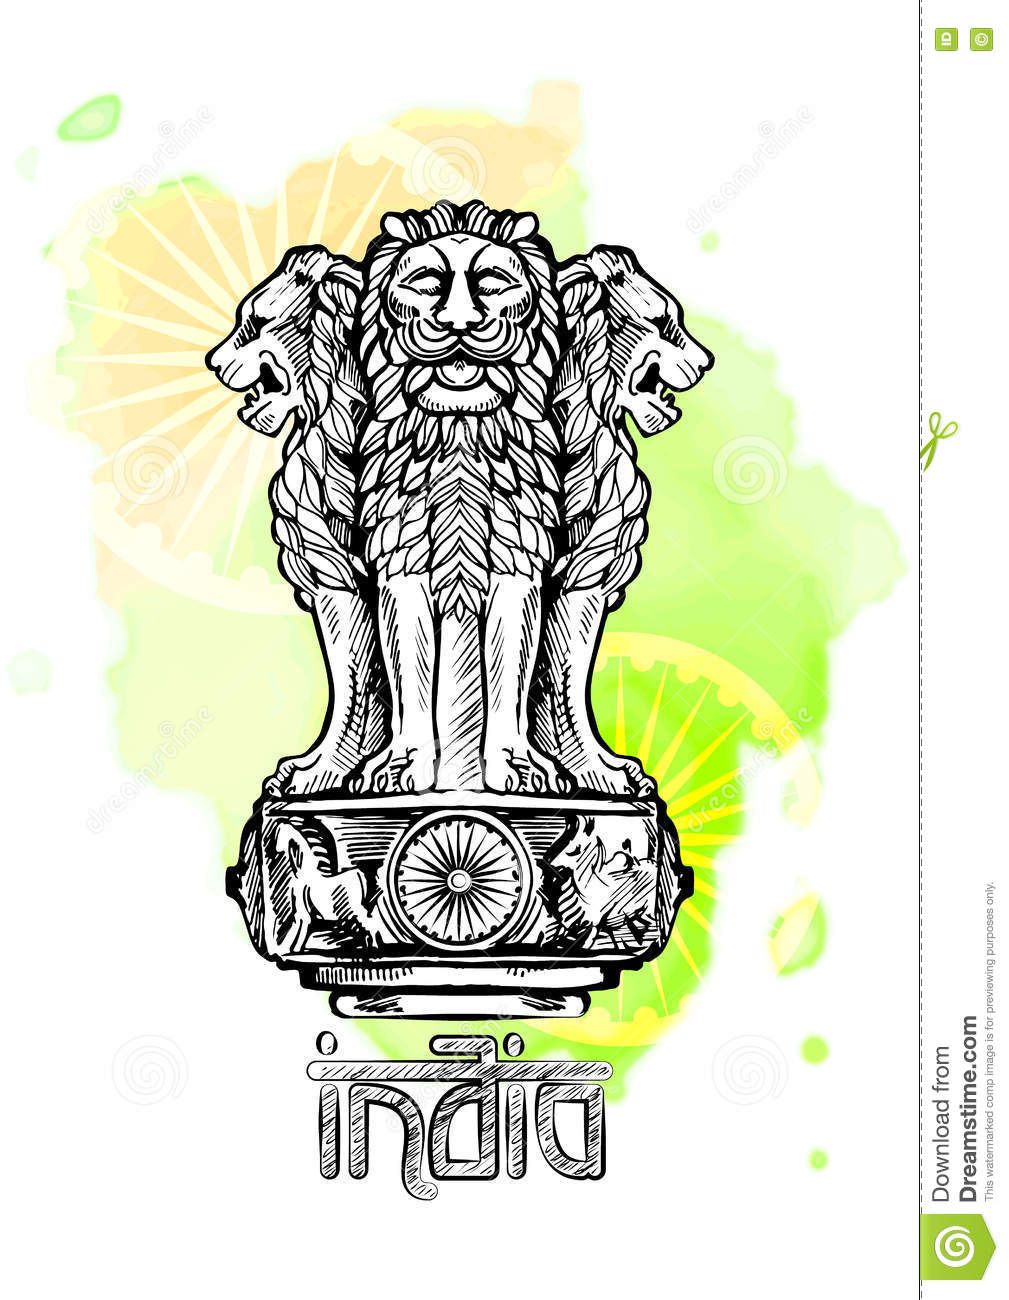 port lions hindu dating site The brisk intercourse between india and greece is no indian author, hindu the only roman emperors who did not throw christians to the lions.